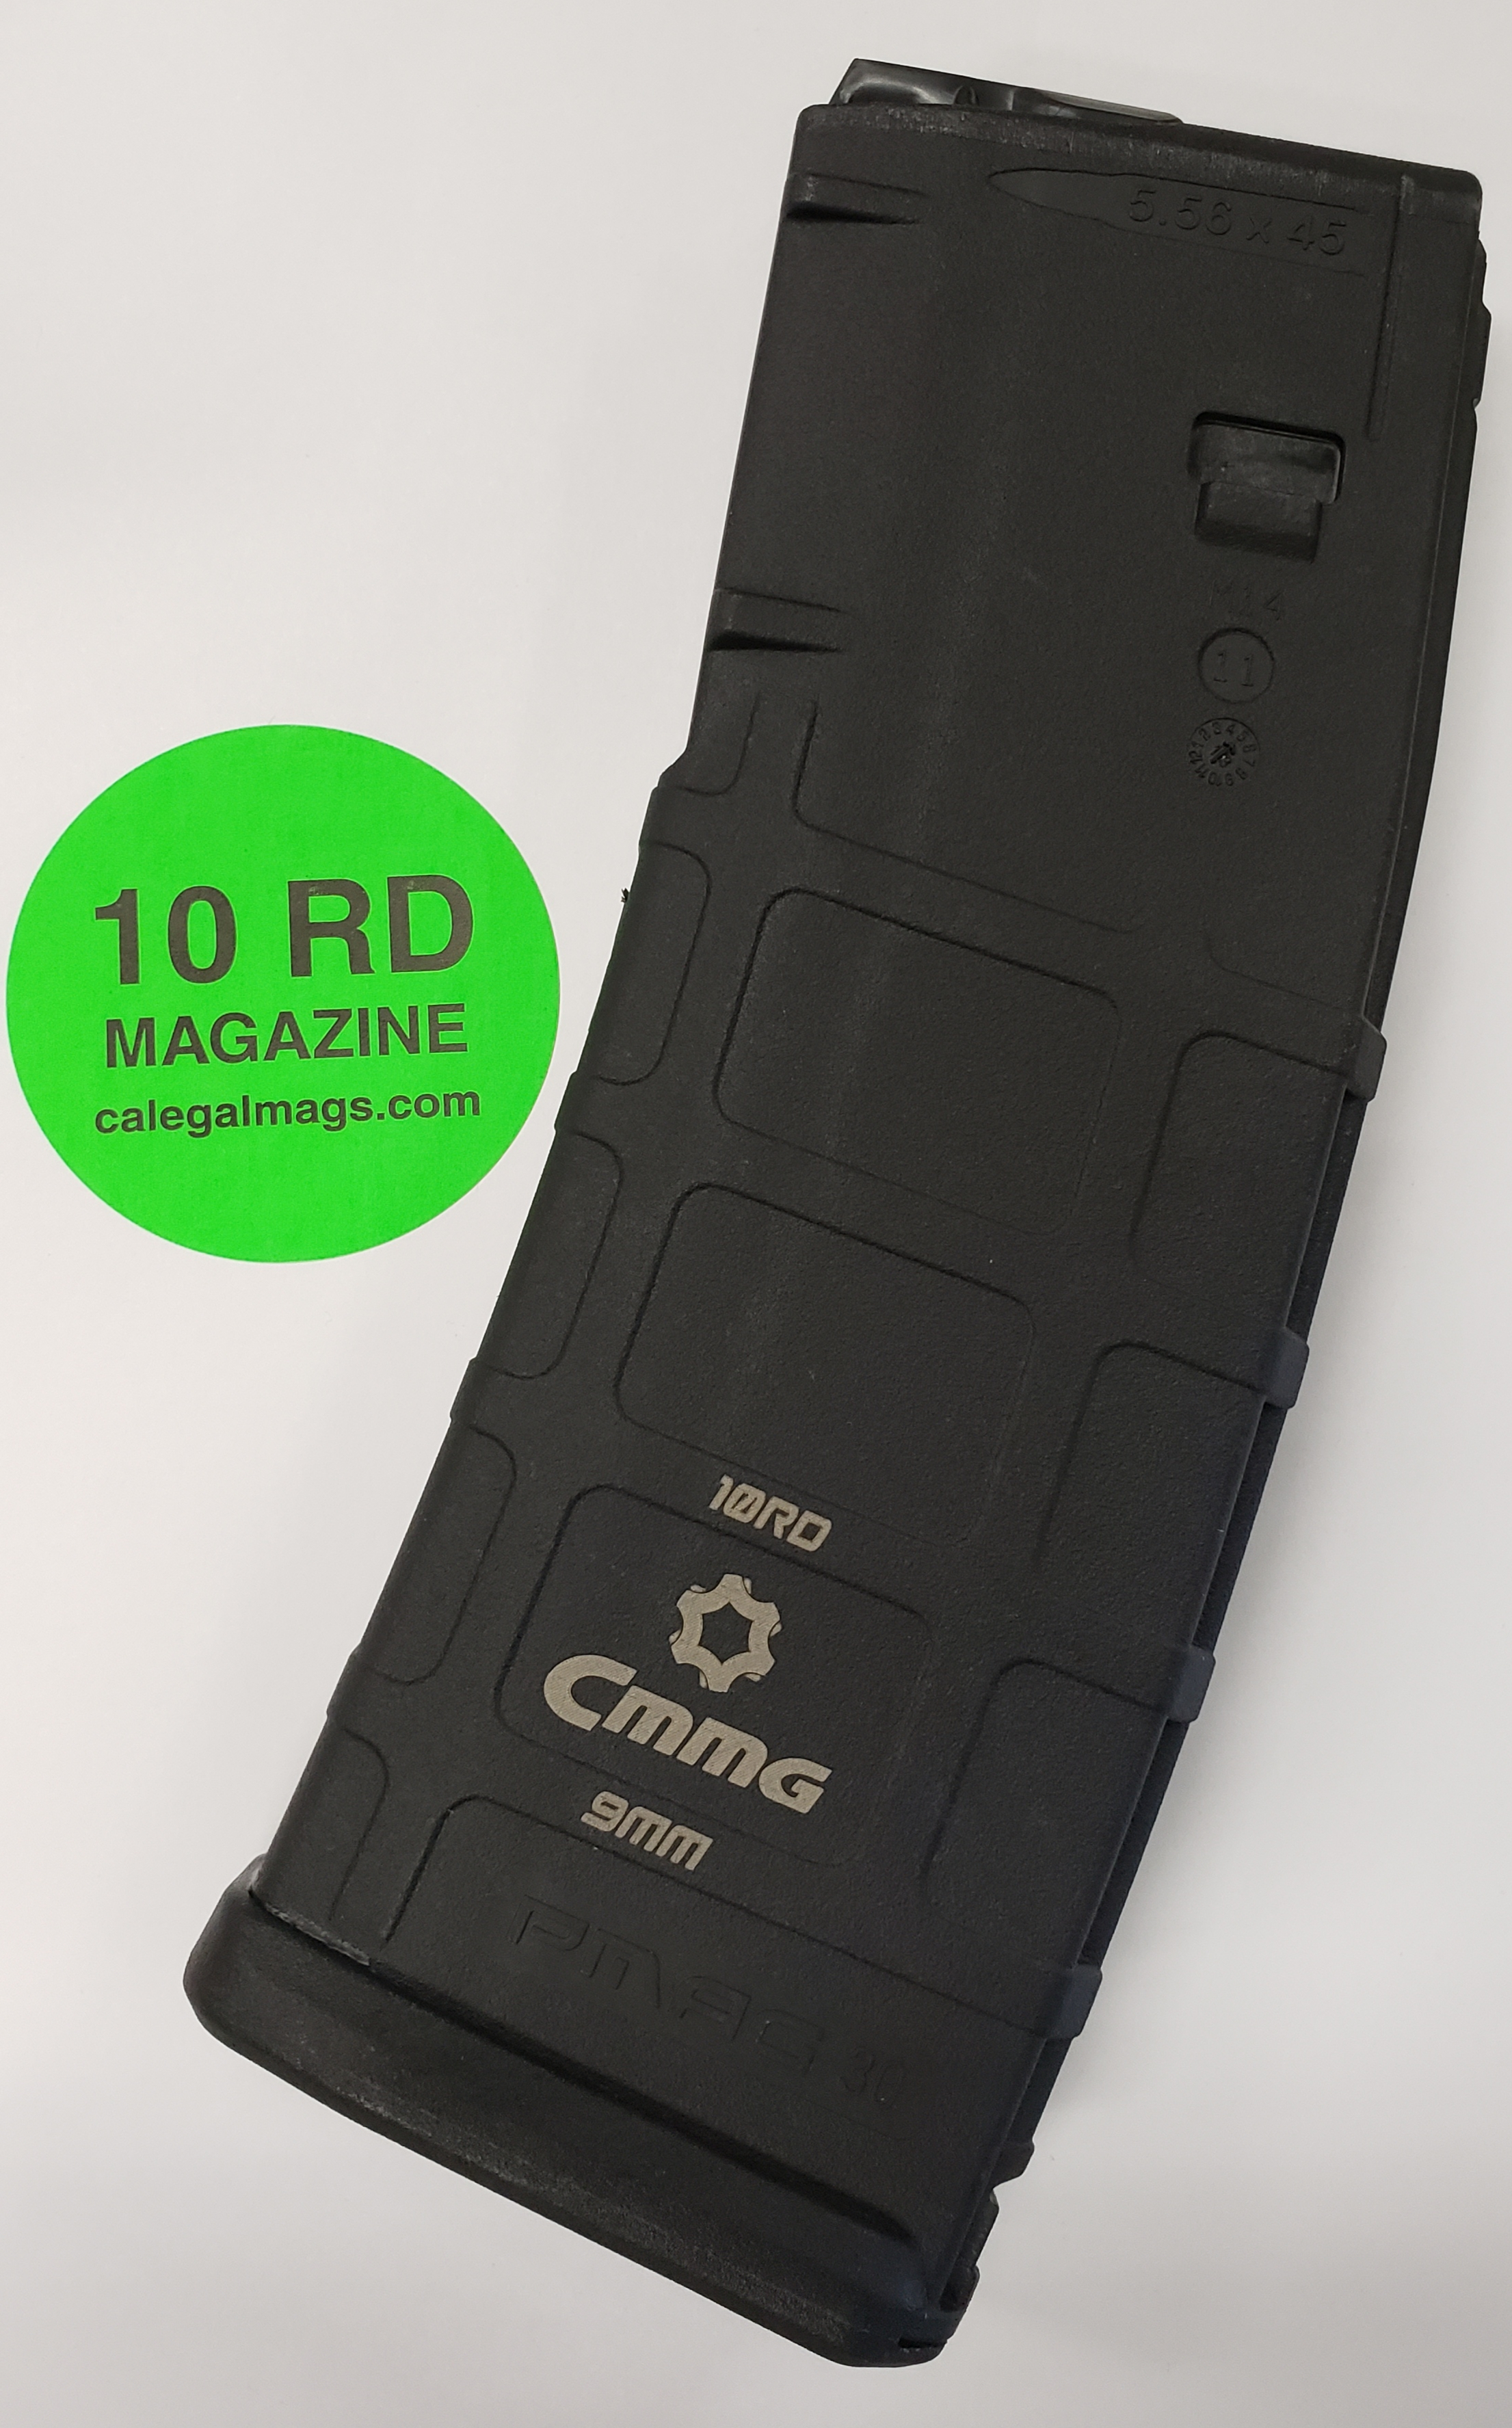 CMMG 9AR CONVERSION 10RD MAGAZINE